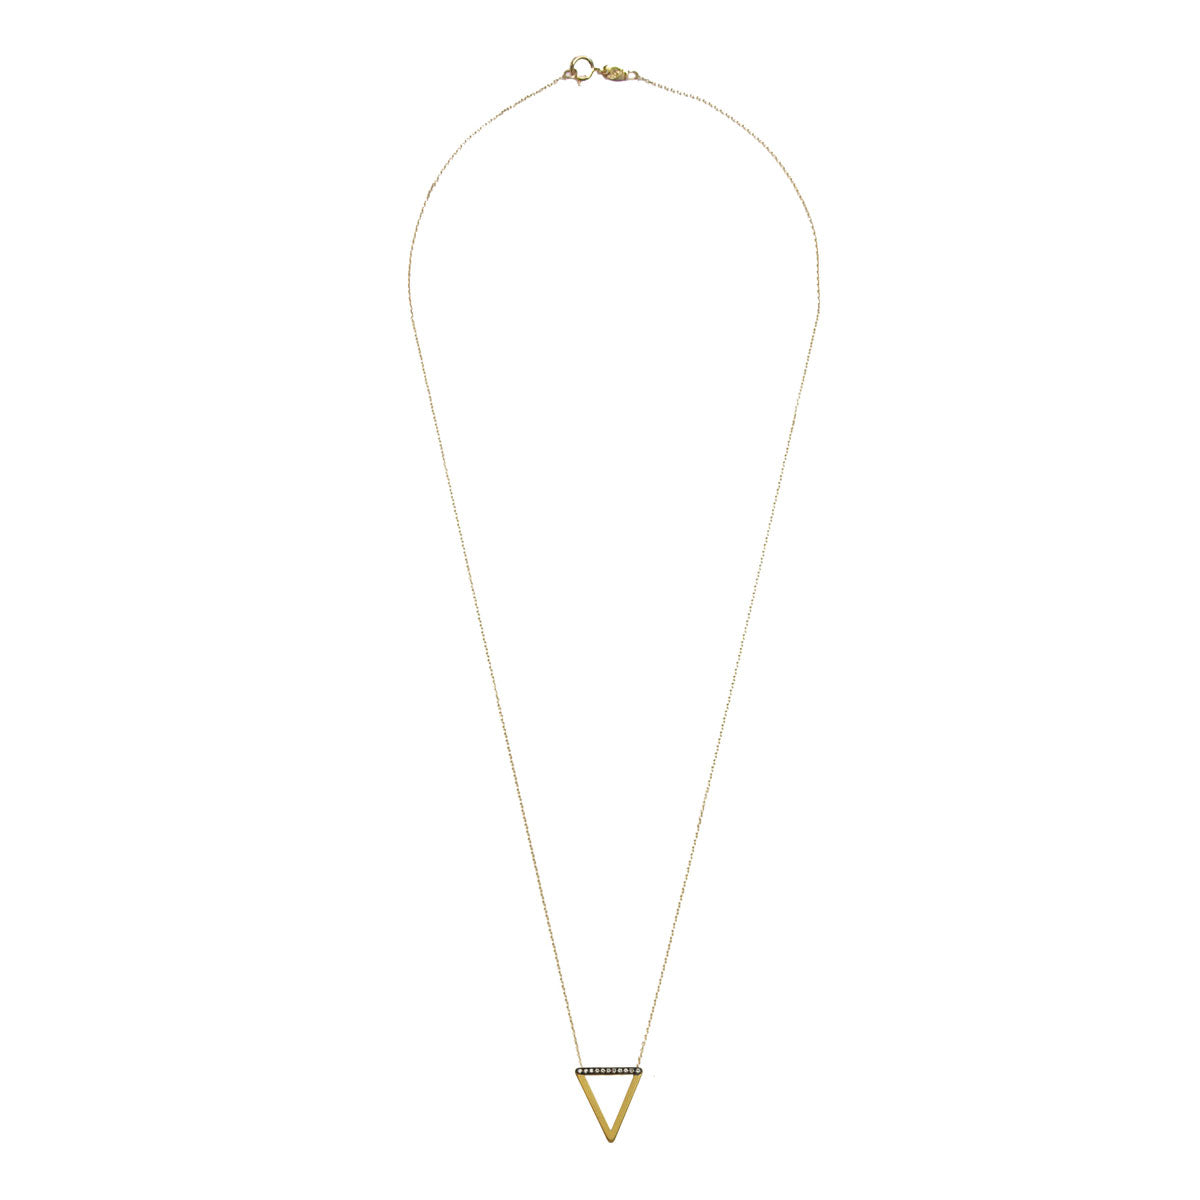 Tinos 9 kt Gold Necklace with Diamonds